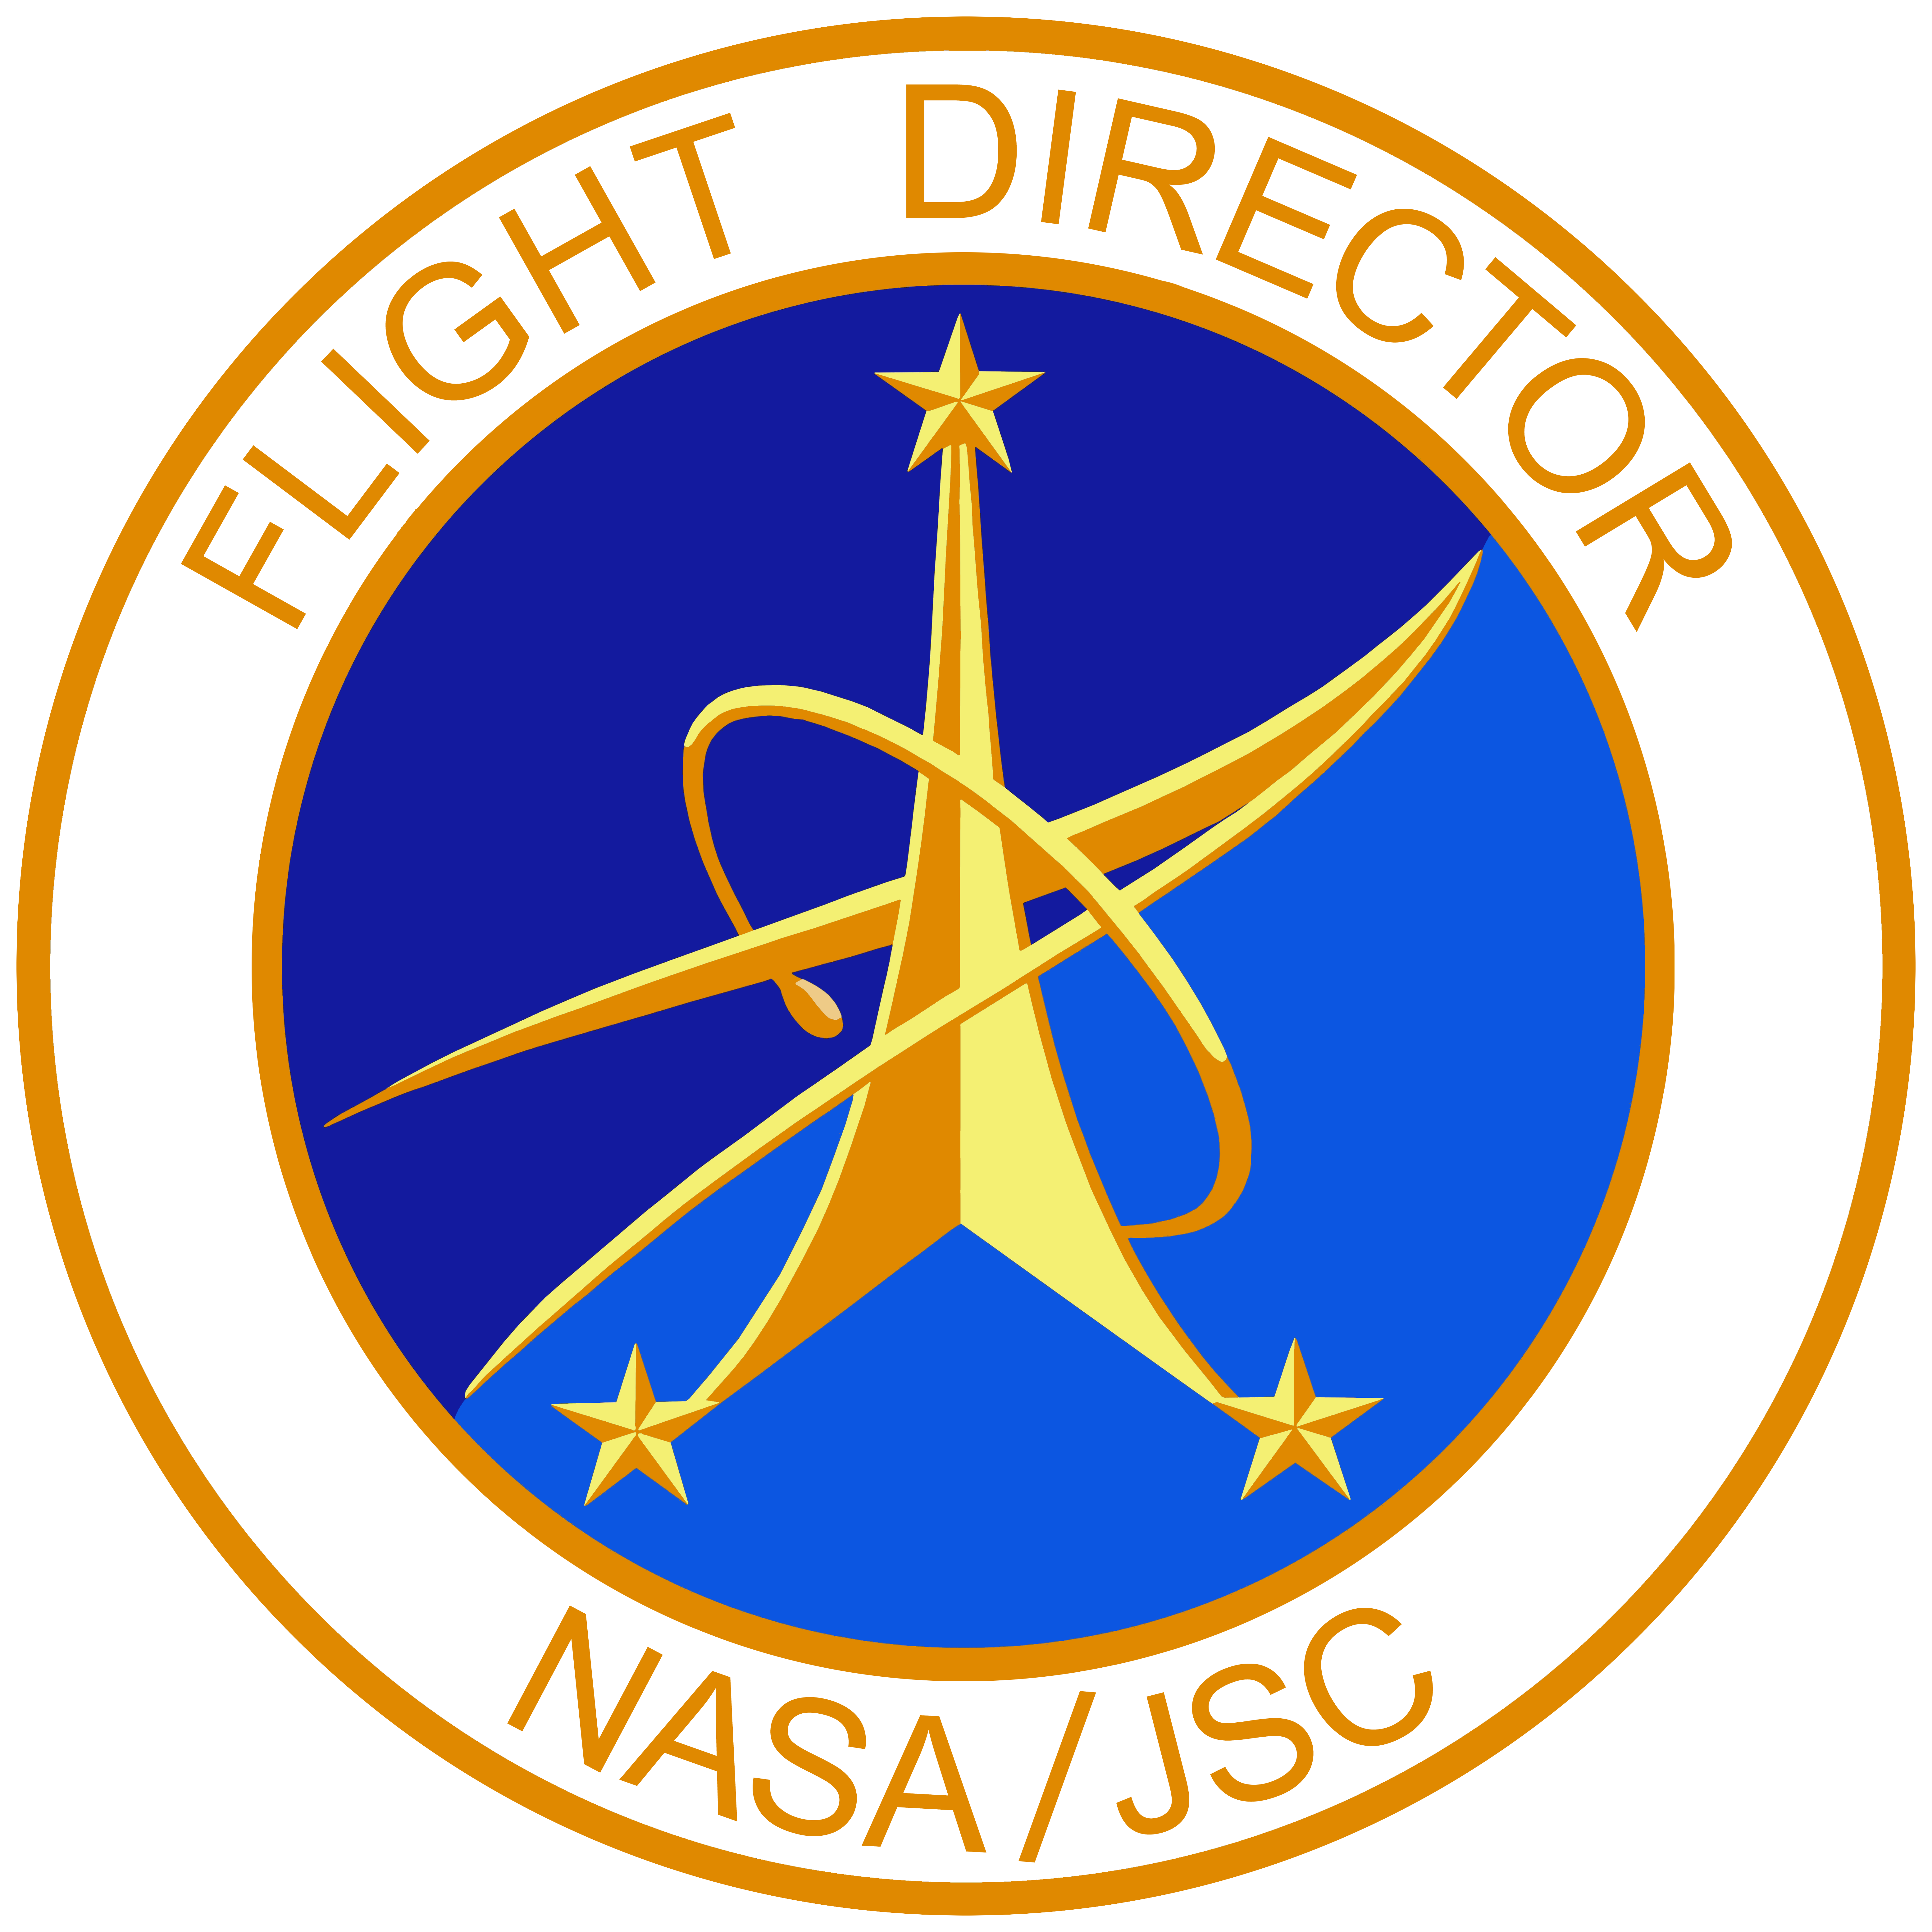 Flight controller - Wikipedia